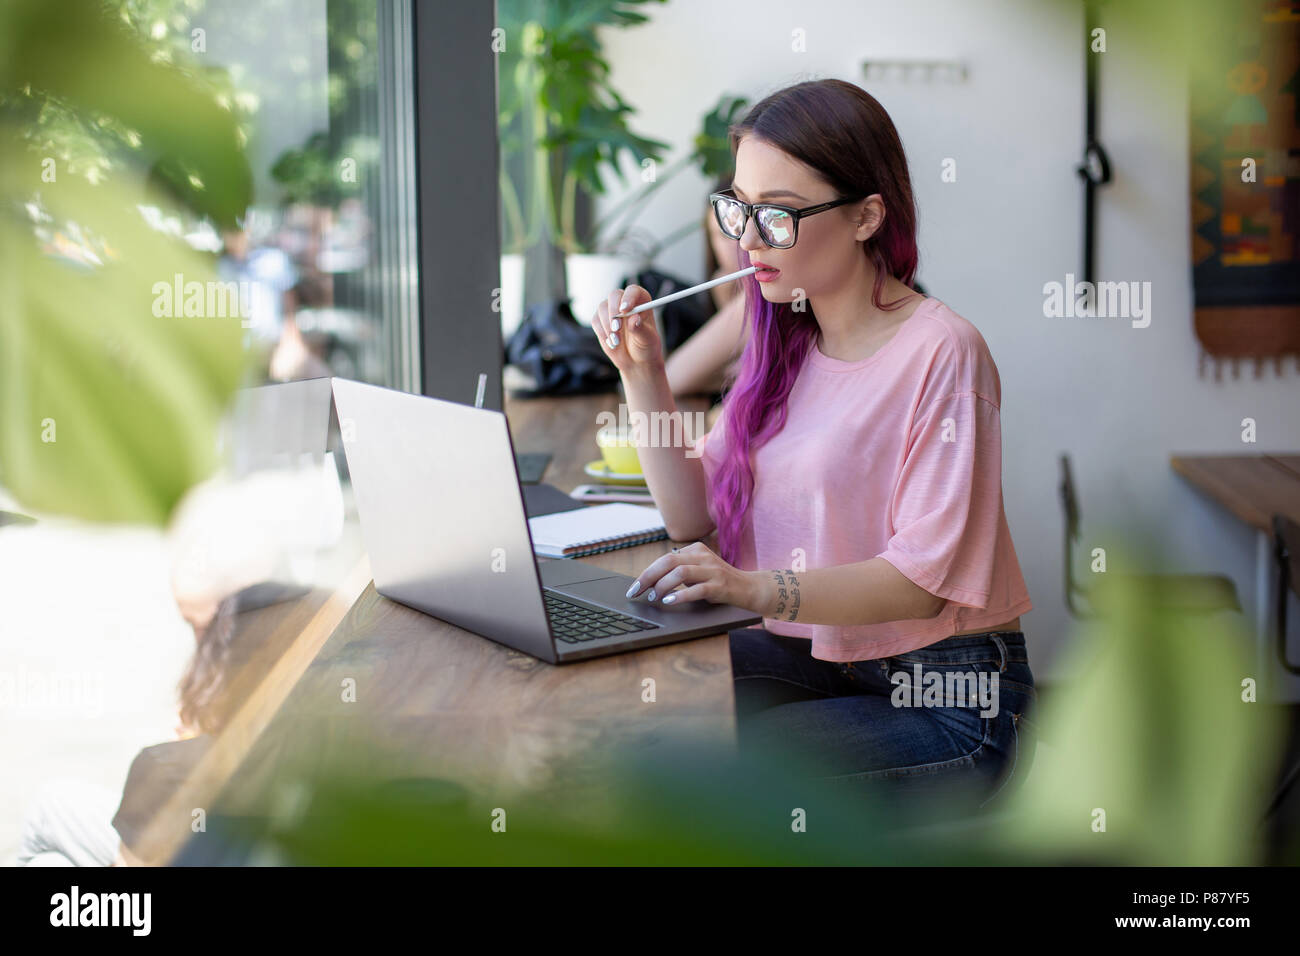 Side view of young businesswoman sitting at table in coffee shop. On table cup of coffee and laptop. In background white wall and window. - Stock Image